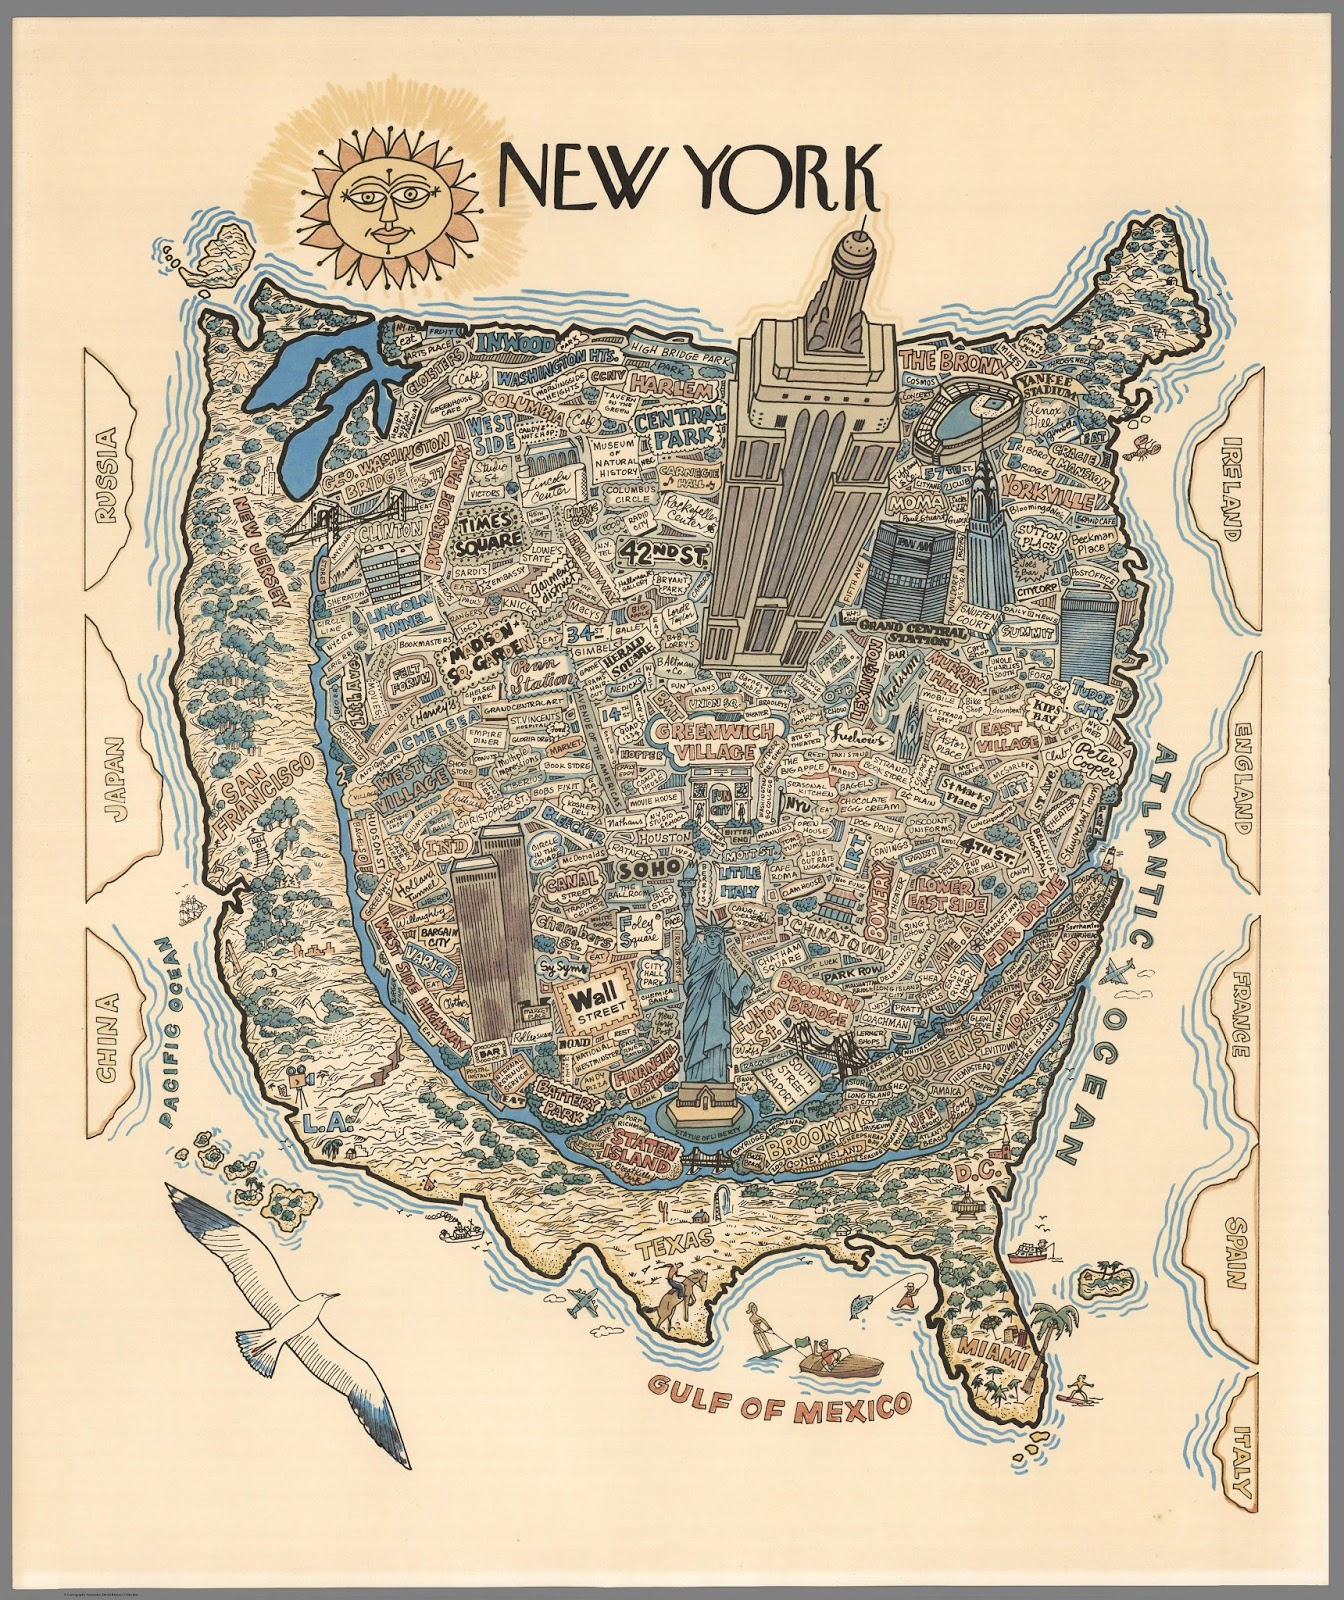 The World as seen from New York City (1970)